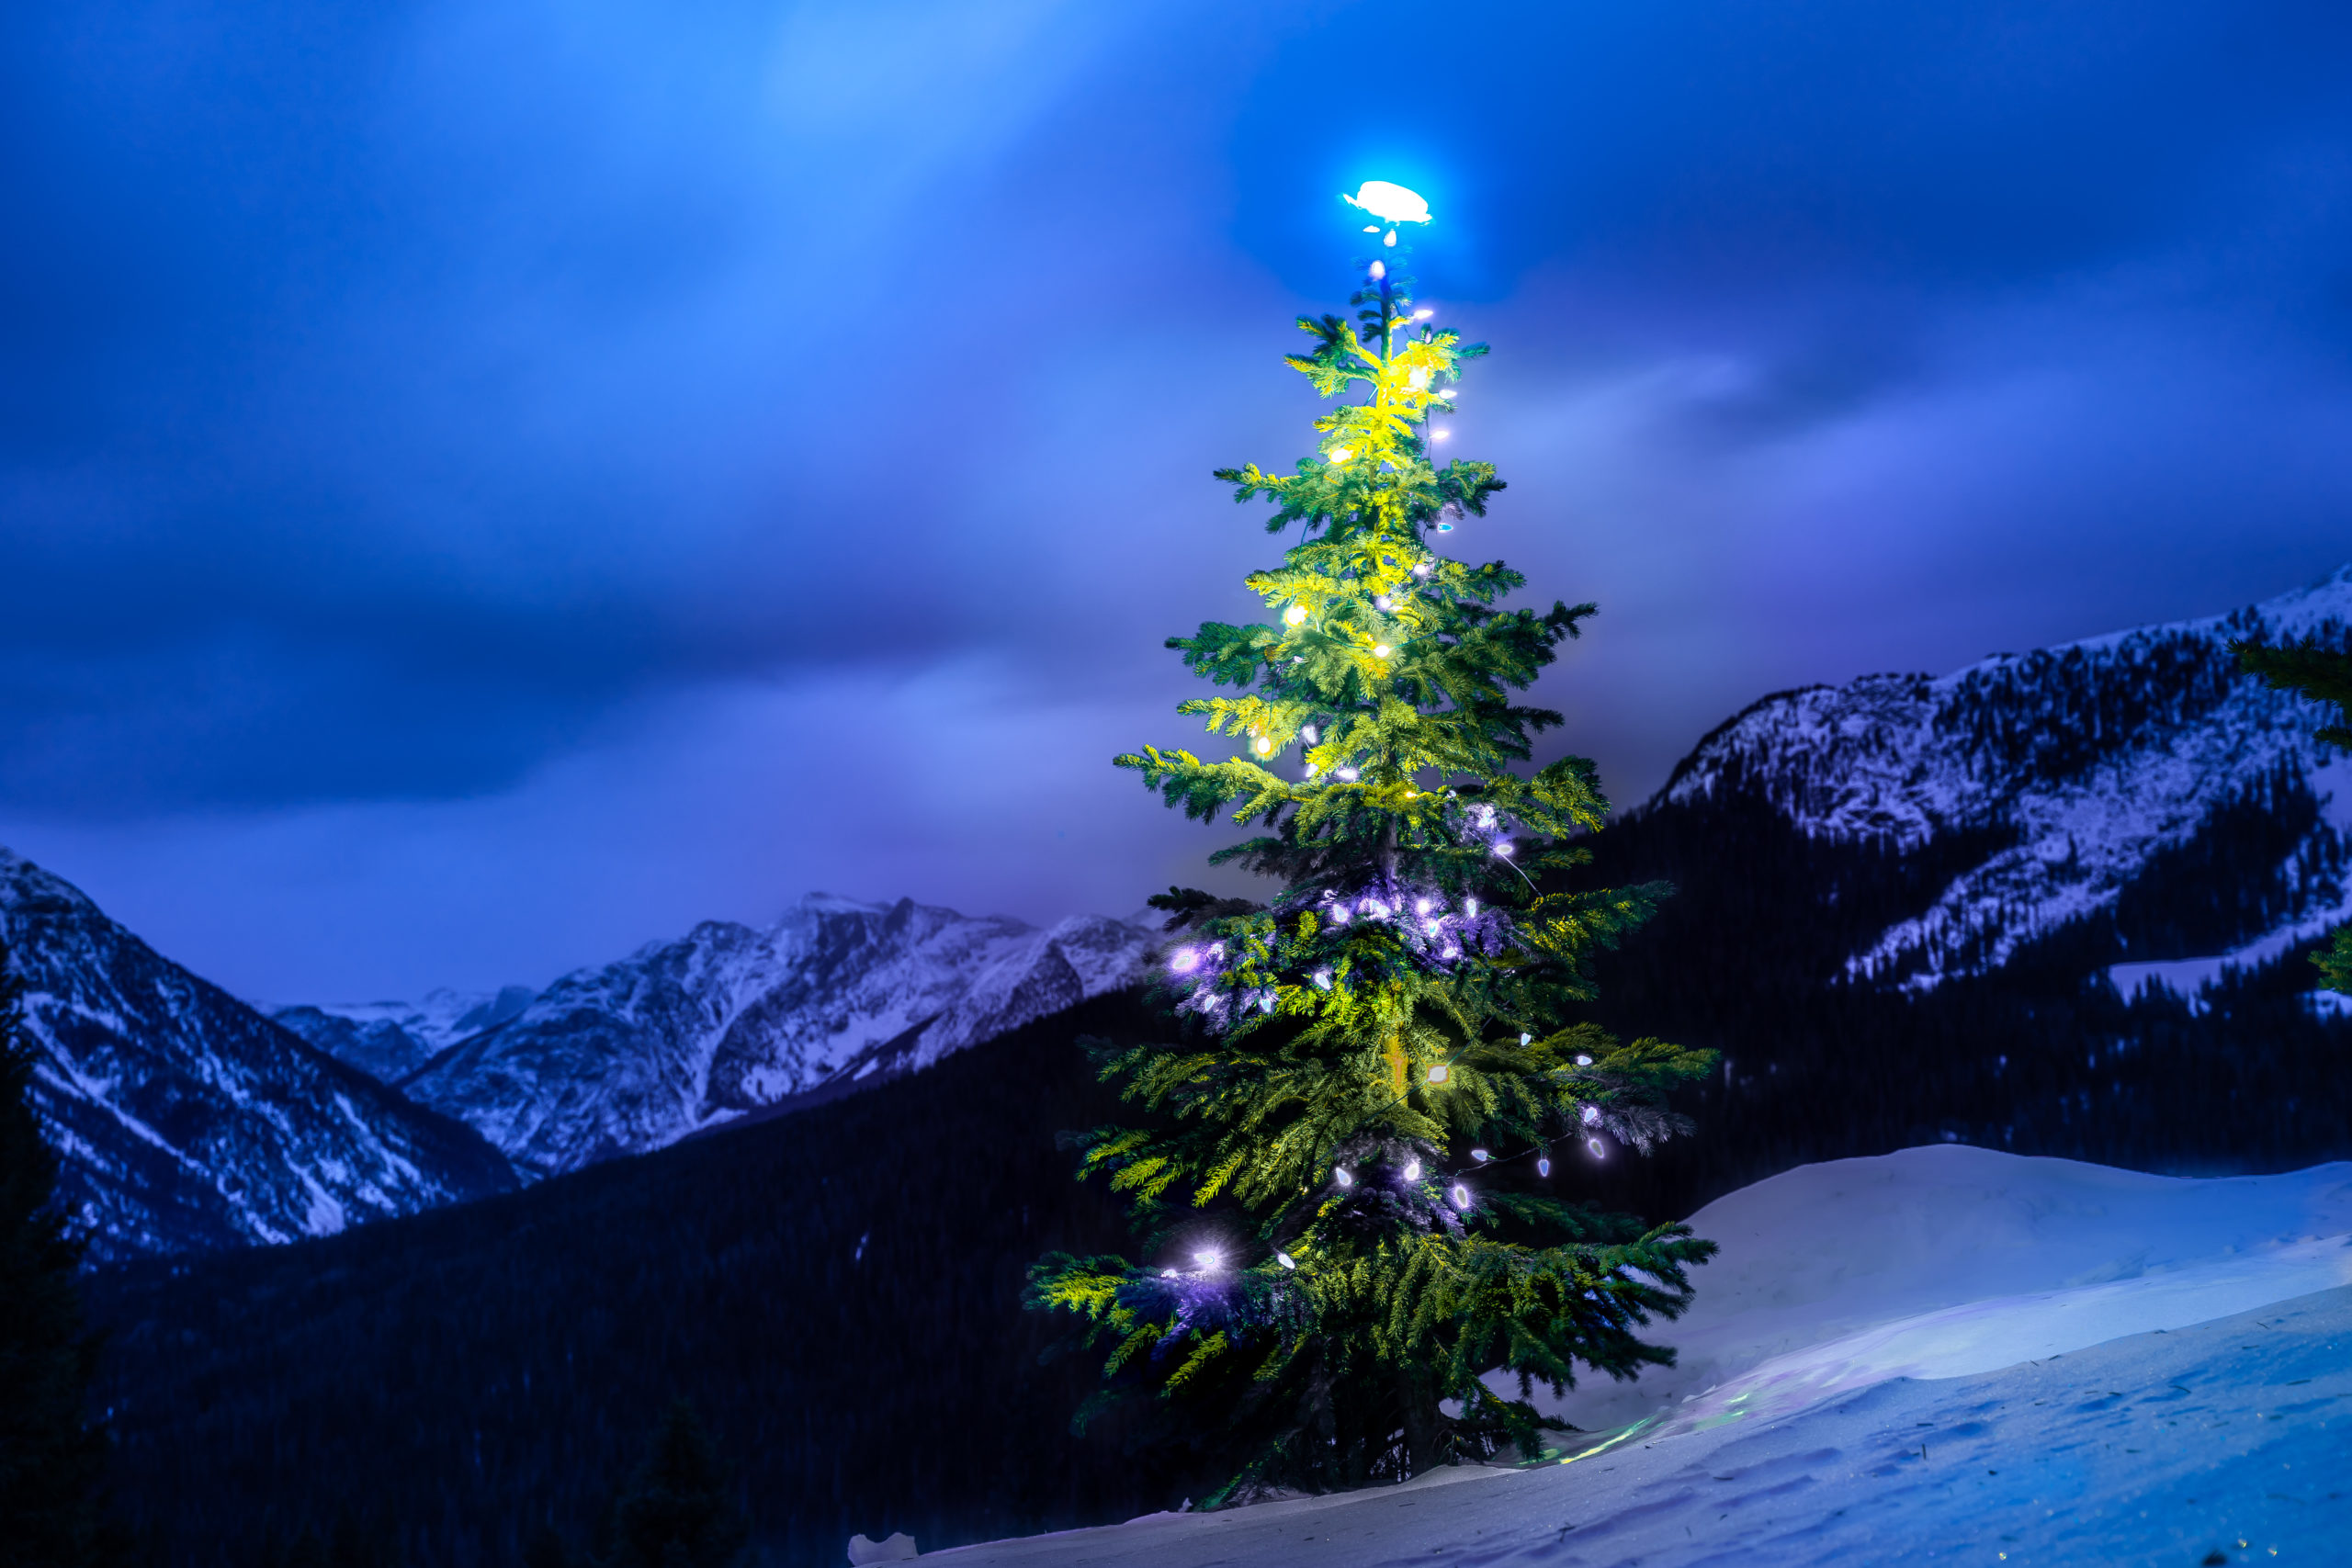 christmas tree 2020 san juan mountains dusk